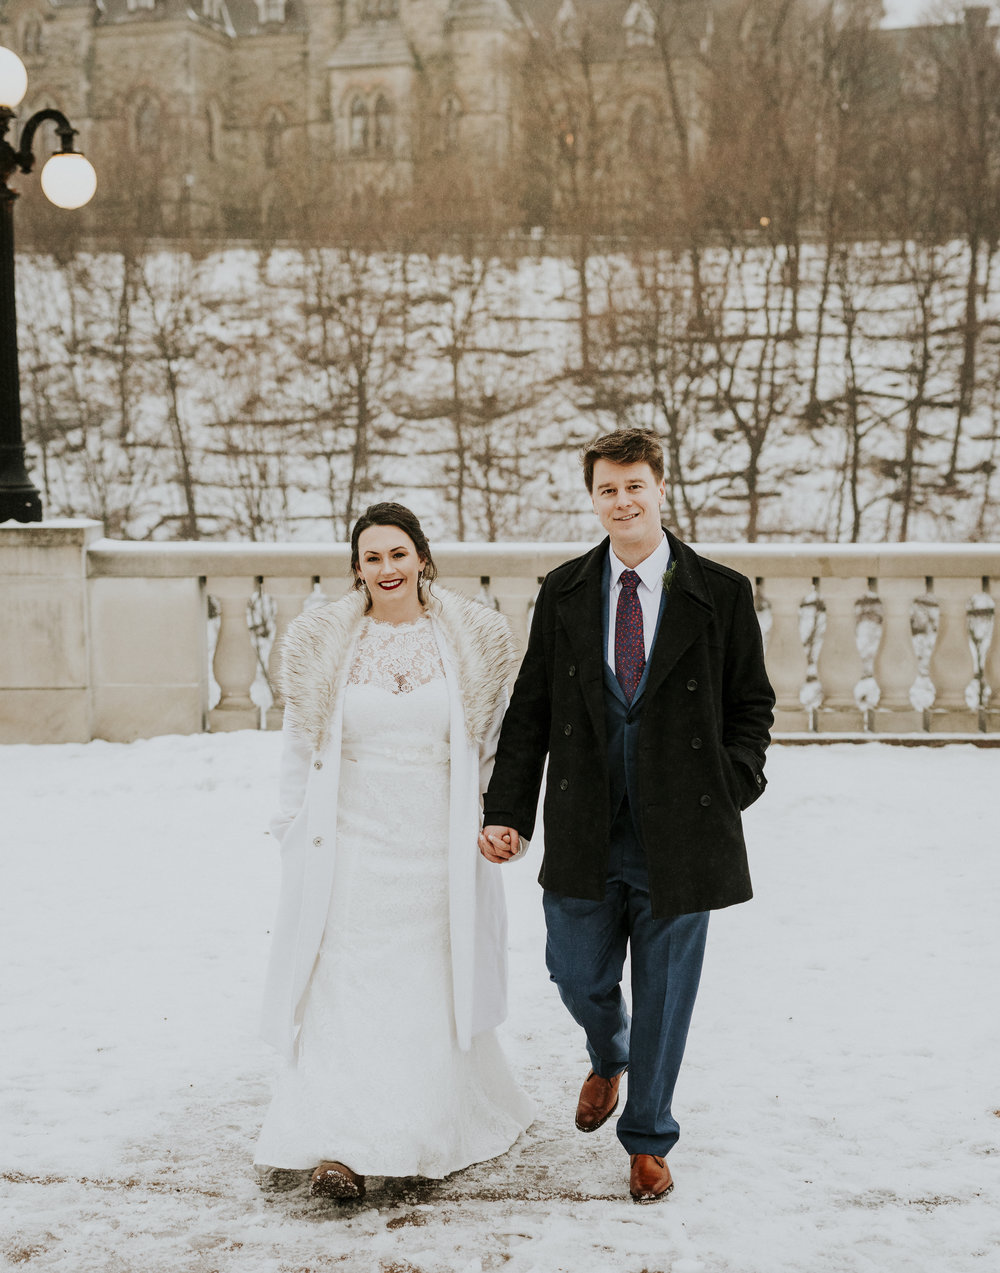 001_Bride + Groom Portraits-038.jpg